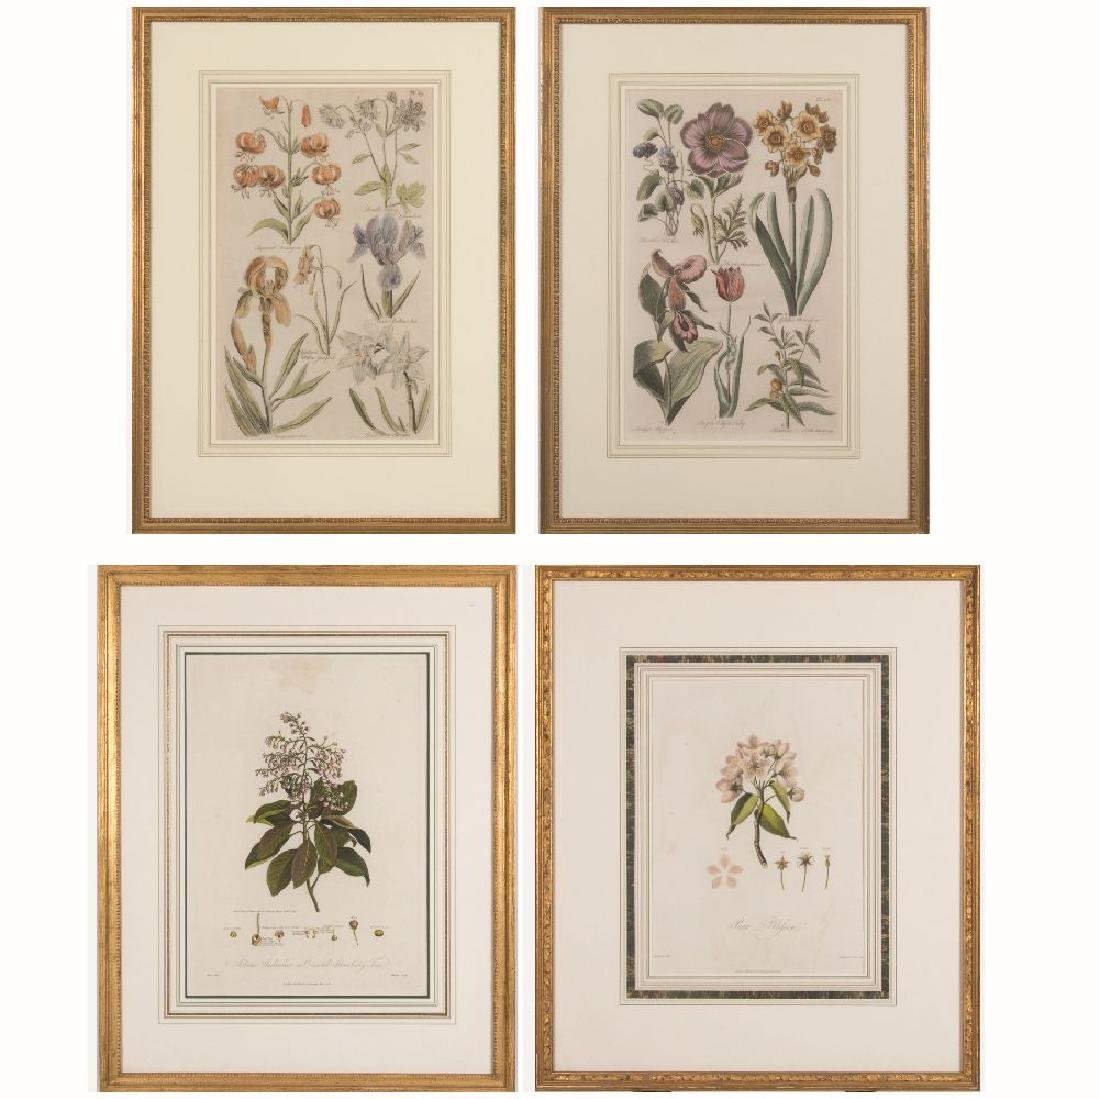 A Group of Four Framed Botanical Prints by Various